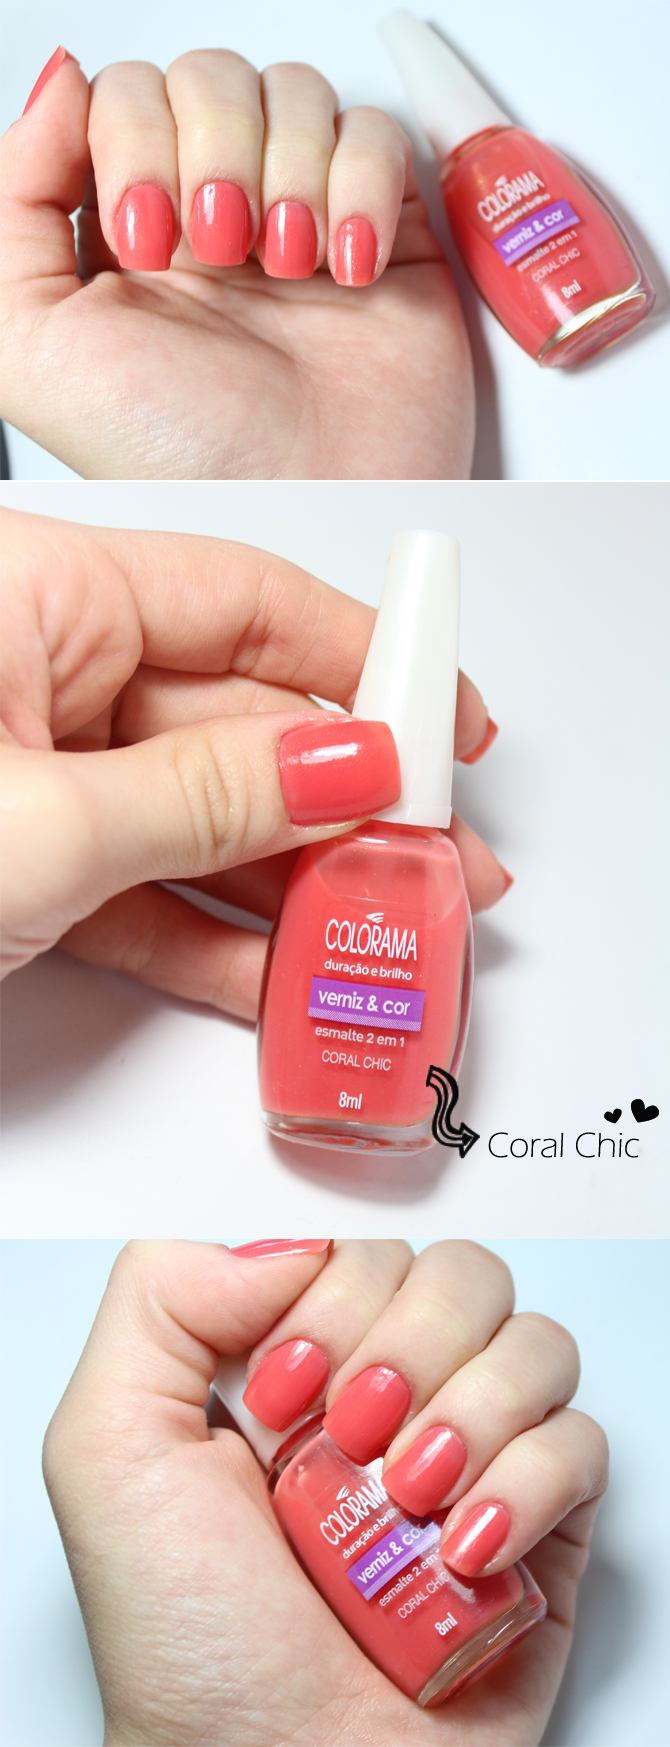 coral chic colorama